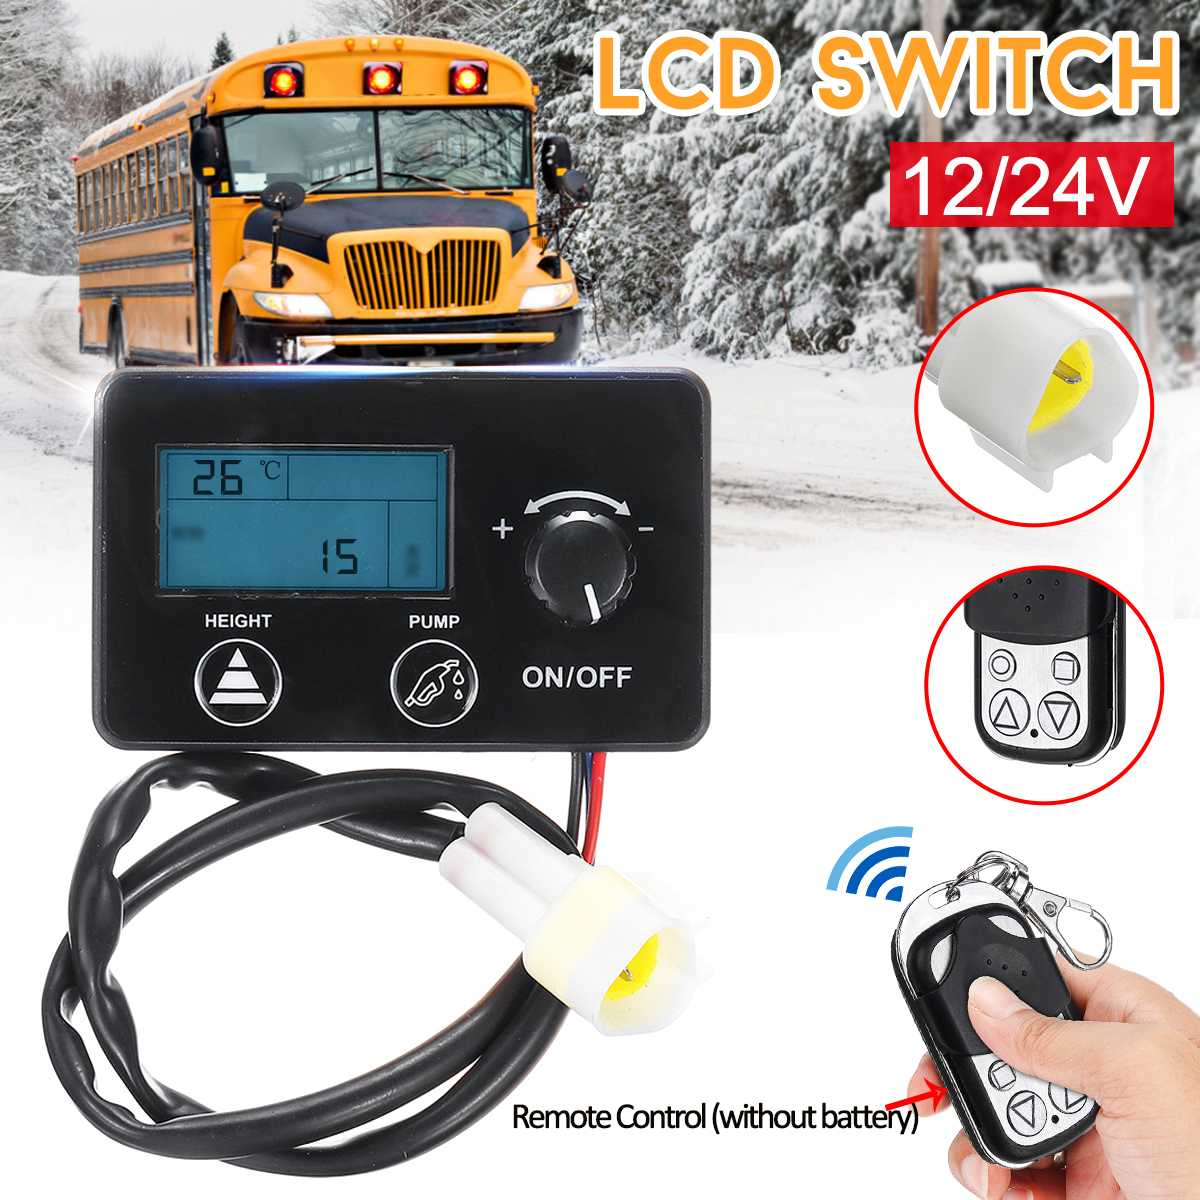 LCD Diesel Heater Controller Remote Control + LCD Monitor Switch Replacement Parts For Car Air Diesel Parking Heater 12V/24V